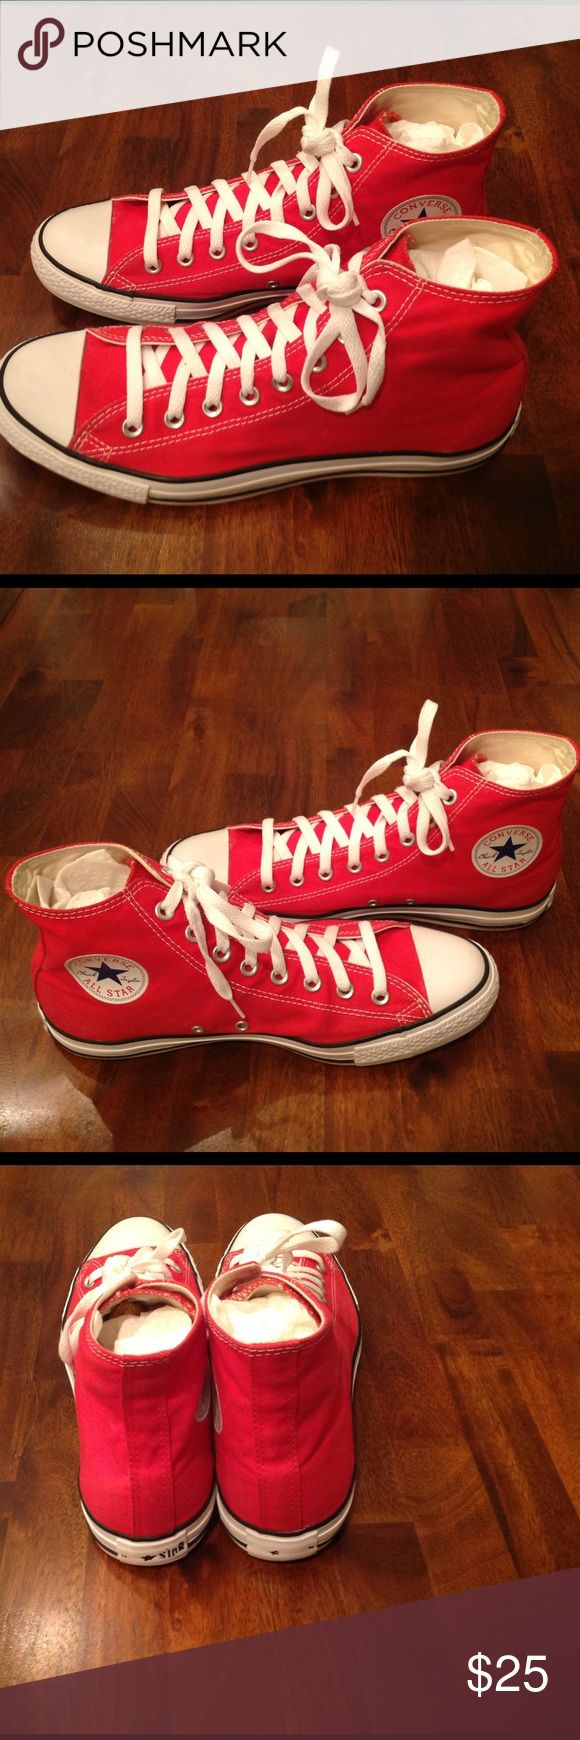 """CONVERSE CHUCK TAYLOR HI TOP SNEAKERS PRE-OWNED CONVERSE CHUCK TAYLOR ALL STAR HI TOP SNEAKERS; Excellent Condition. Men's Size: 10; Color: Red; Note: The words """"All Star"""" etched on the back of the sneakers has worn off as evidenced in the photos. Make your best offer today. Converse Shoes Sneakers"""